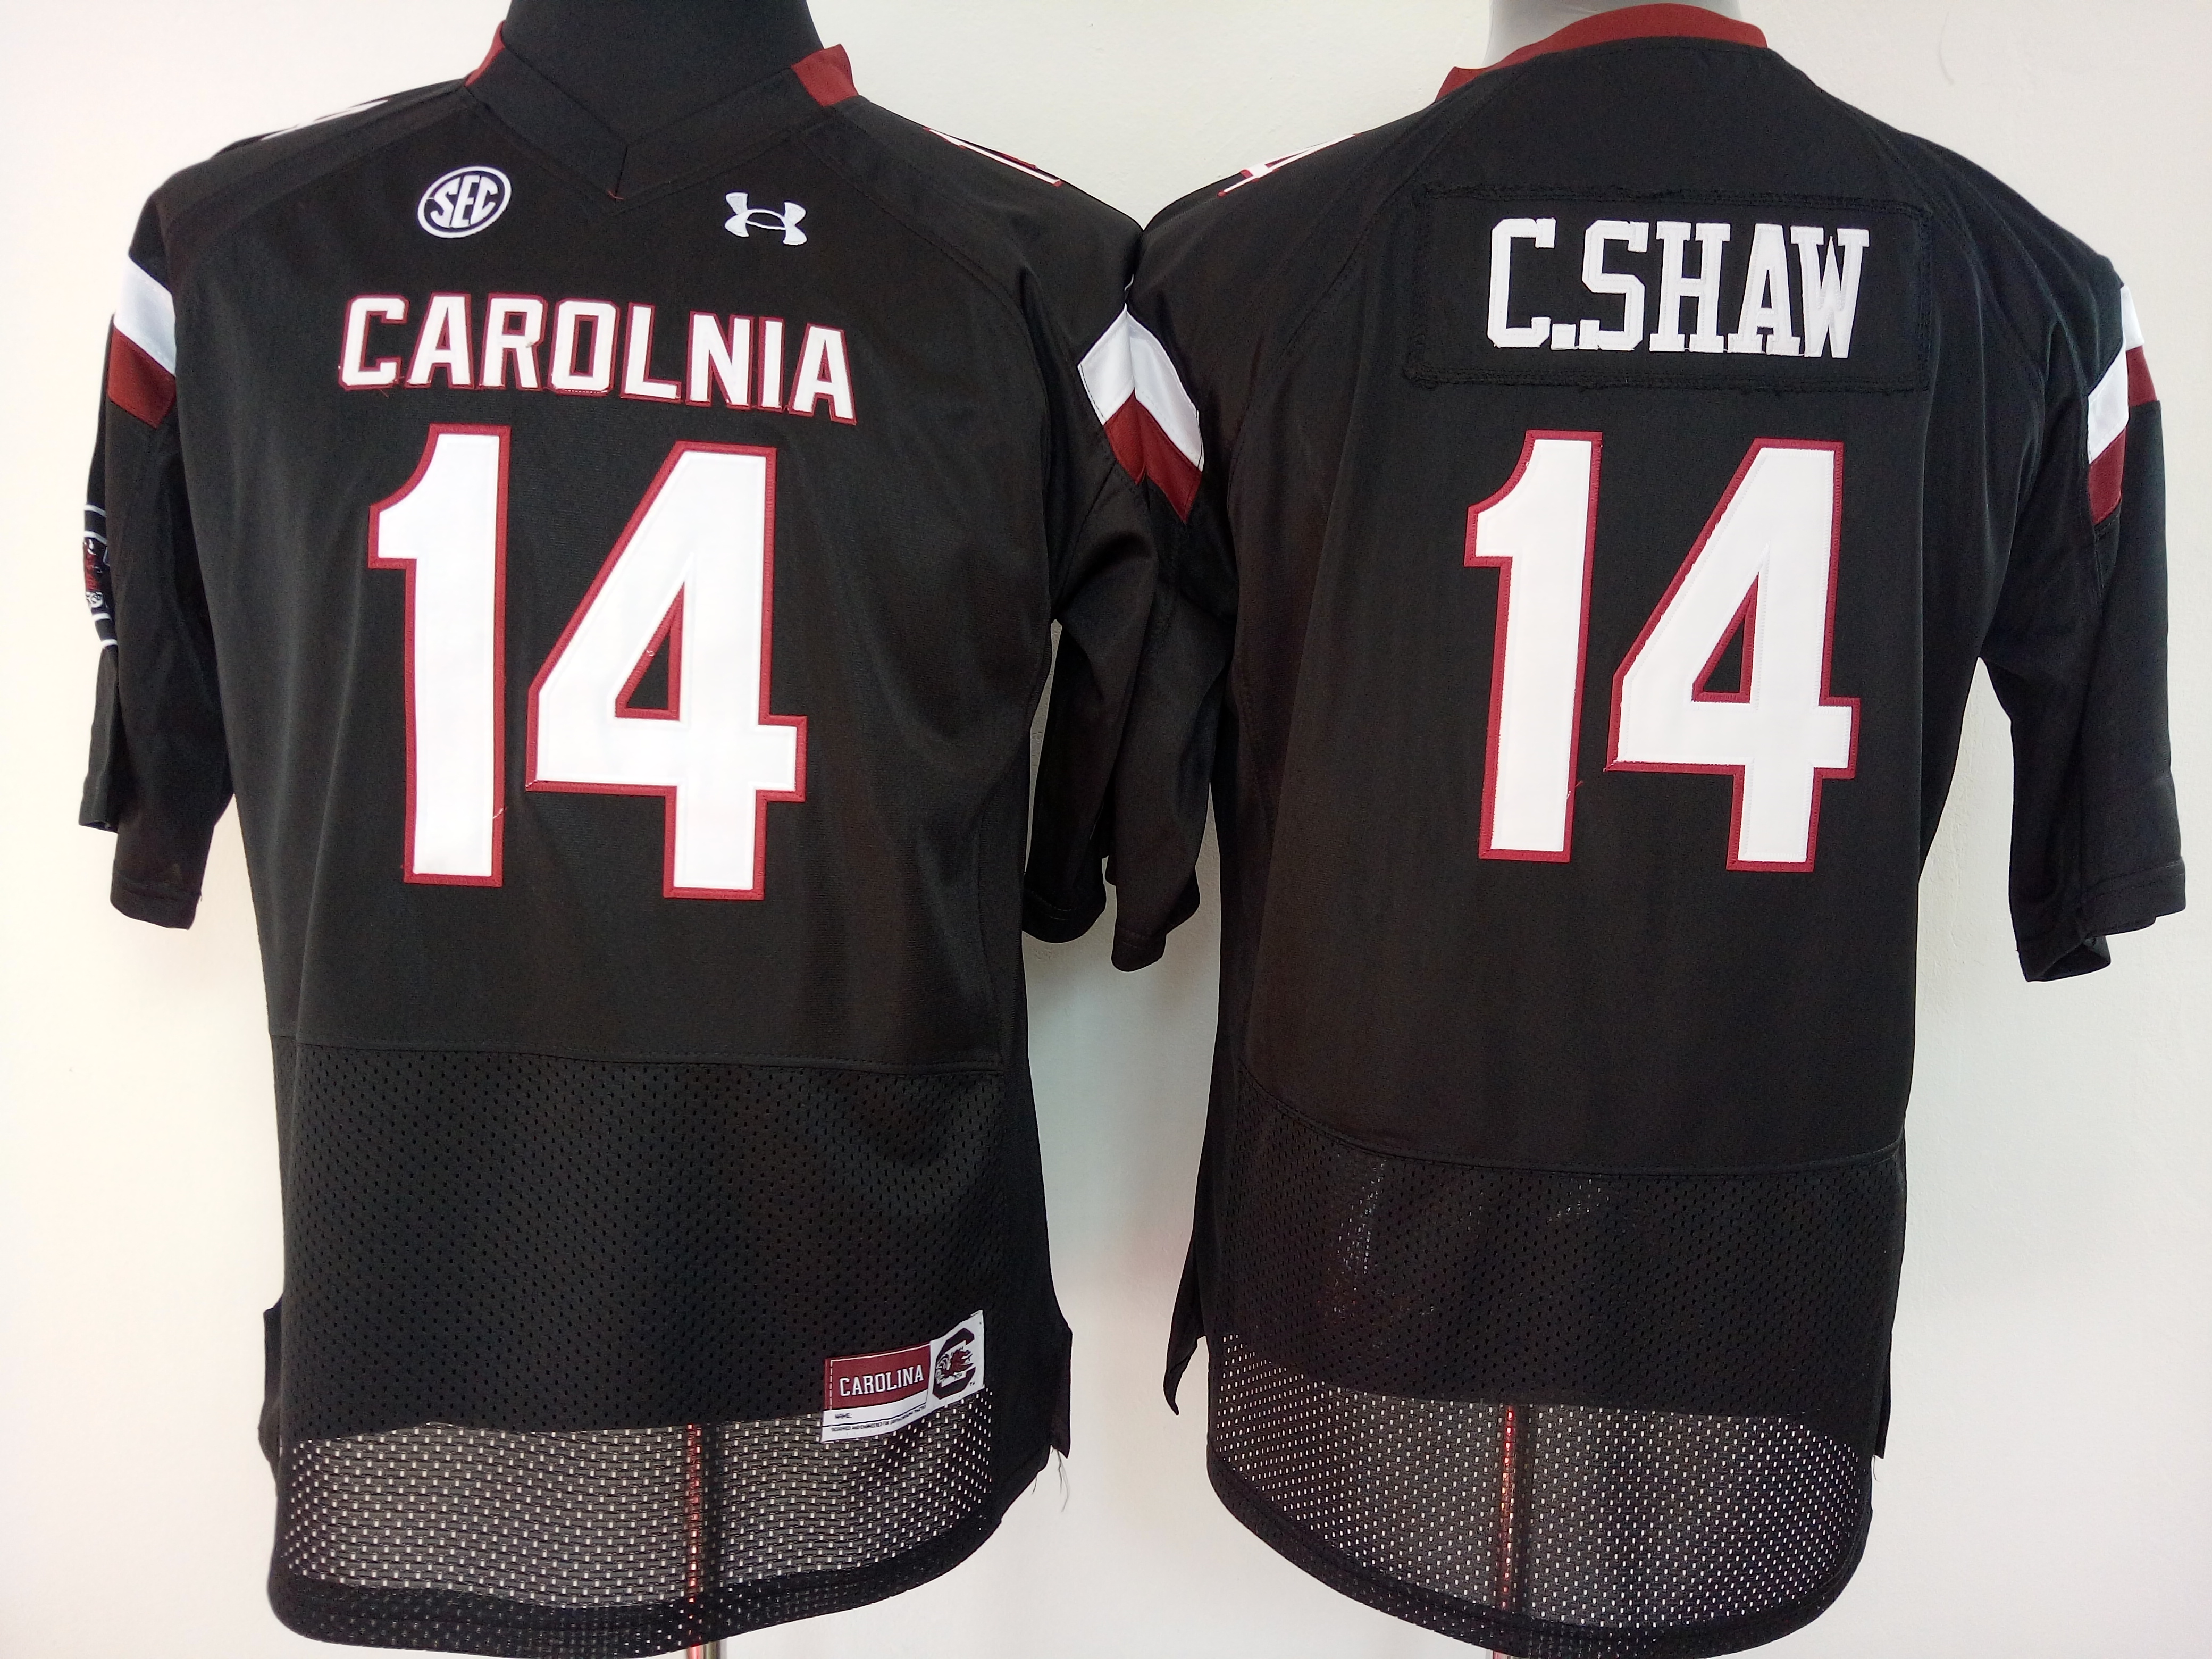 NCAA Womens South Carolina Gamecock Black 14 C shaw jerseys